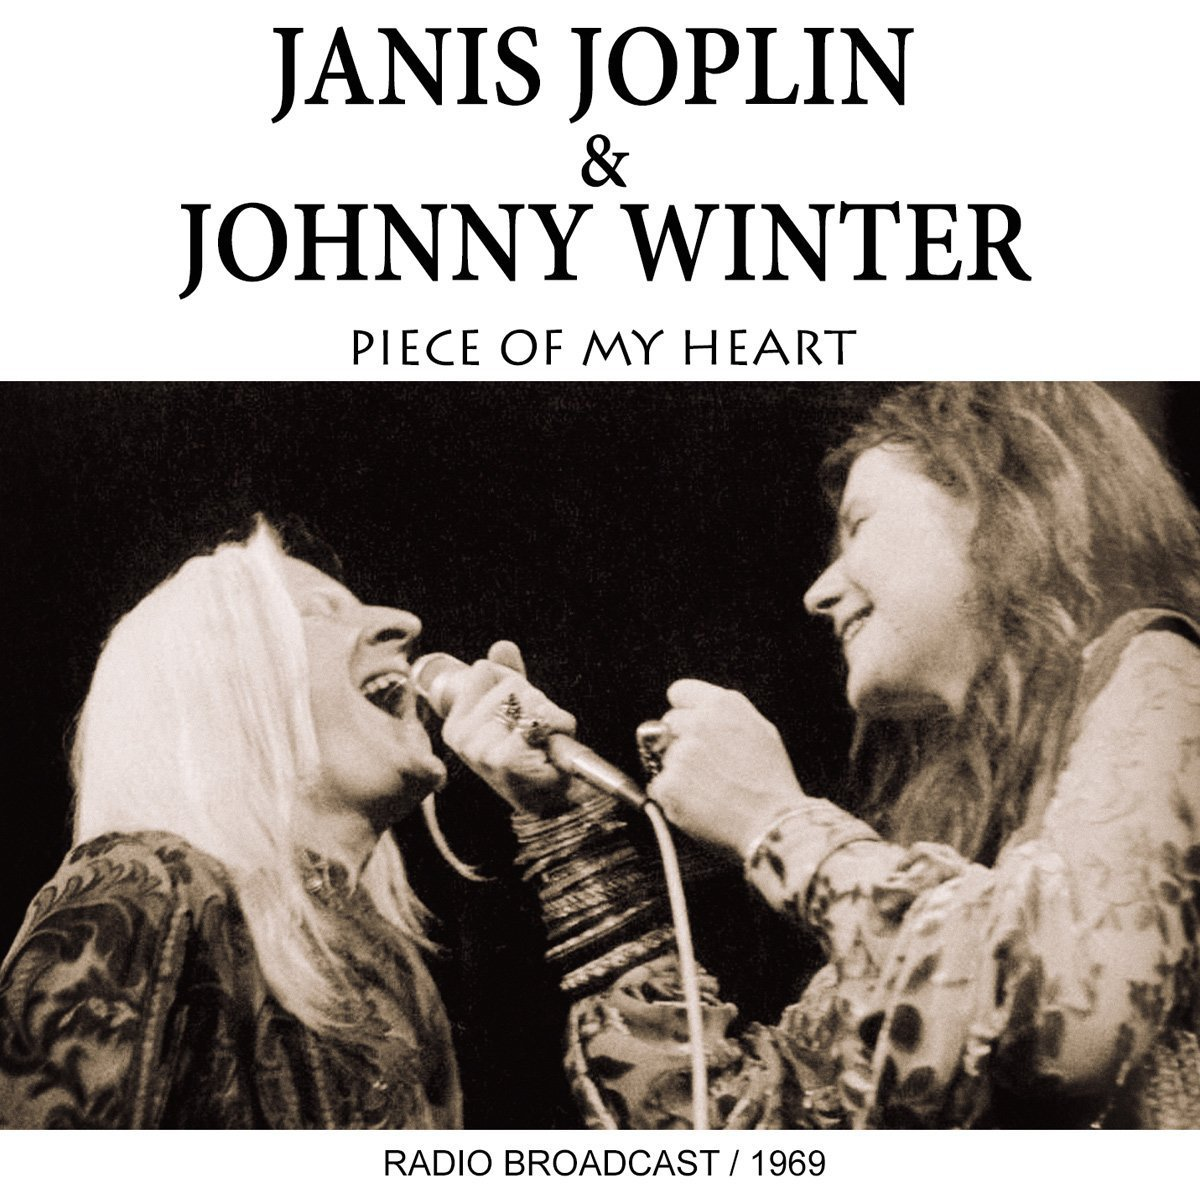 JANIS JOPLIN AND JOHNNY WINTER - Piece Of My Heart 1969 - Amazon.com Music